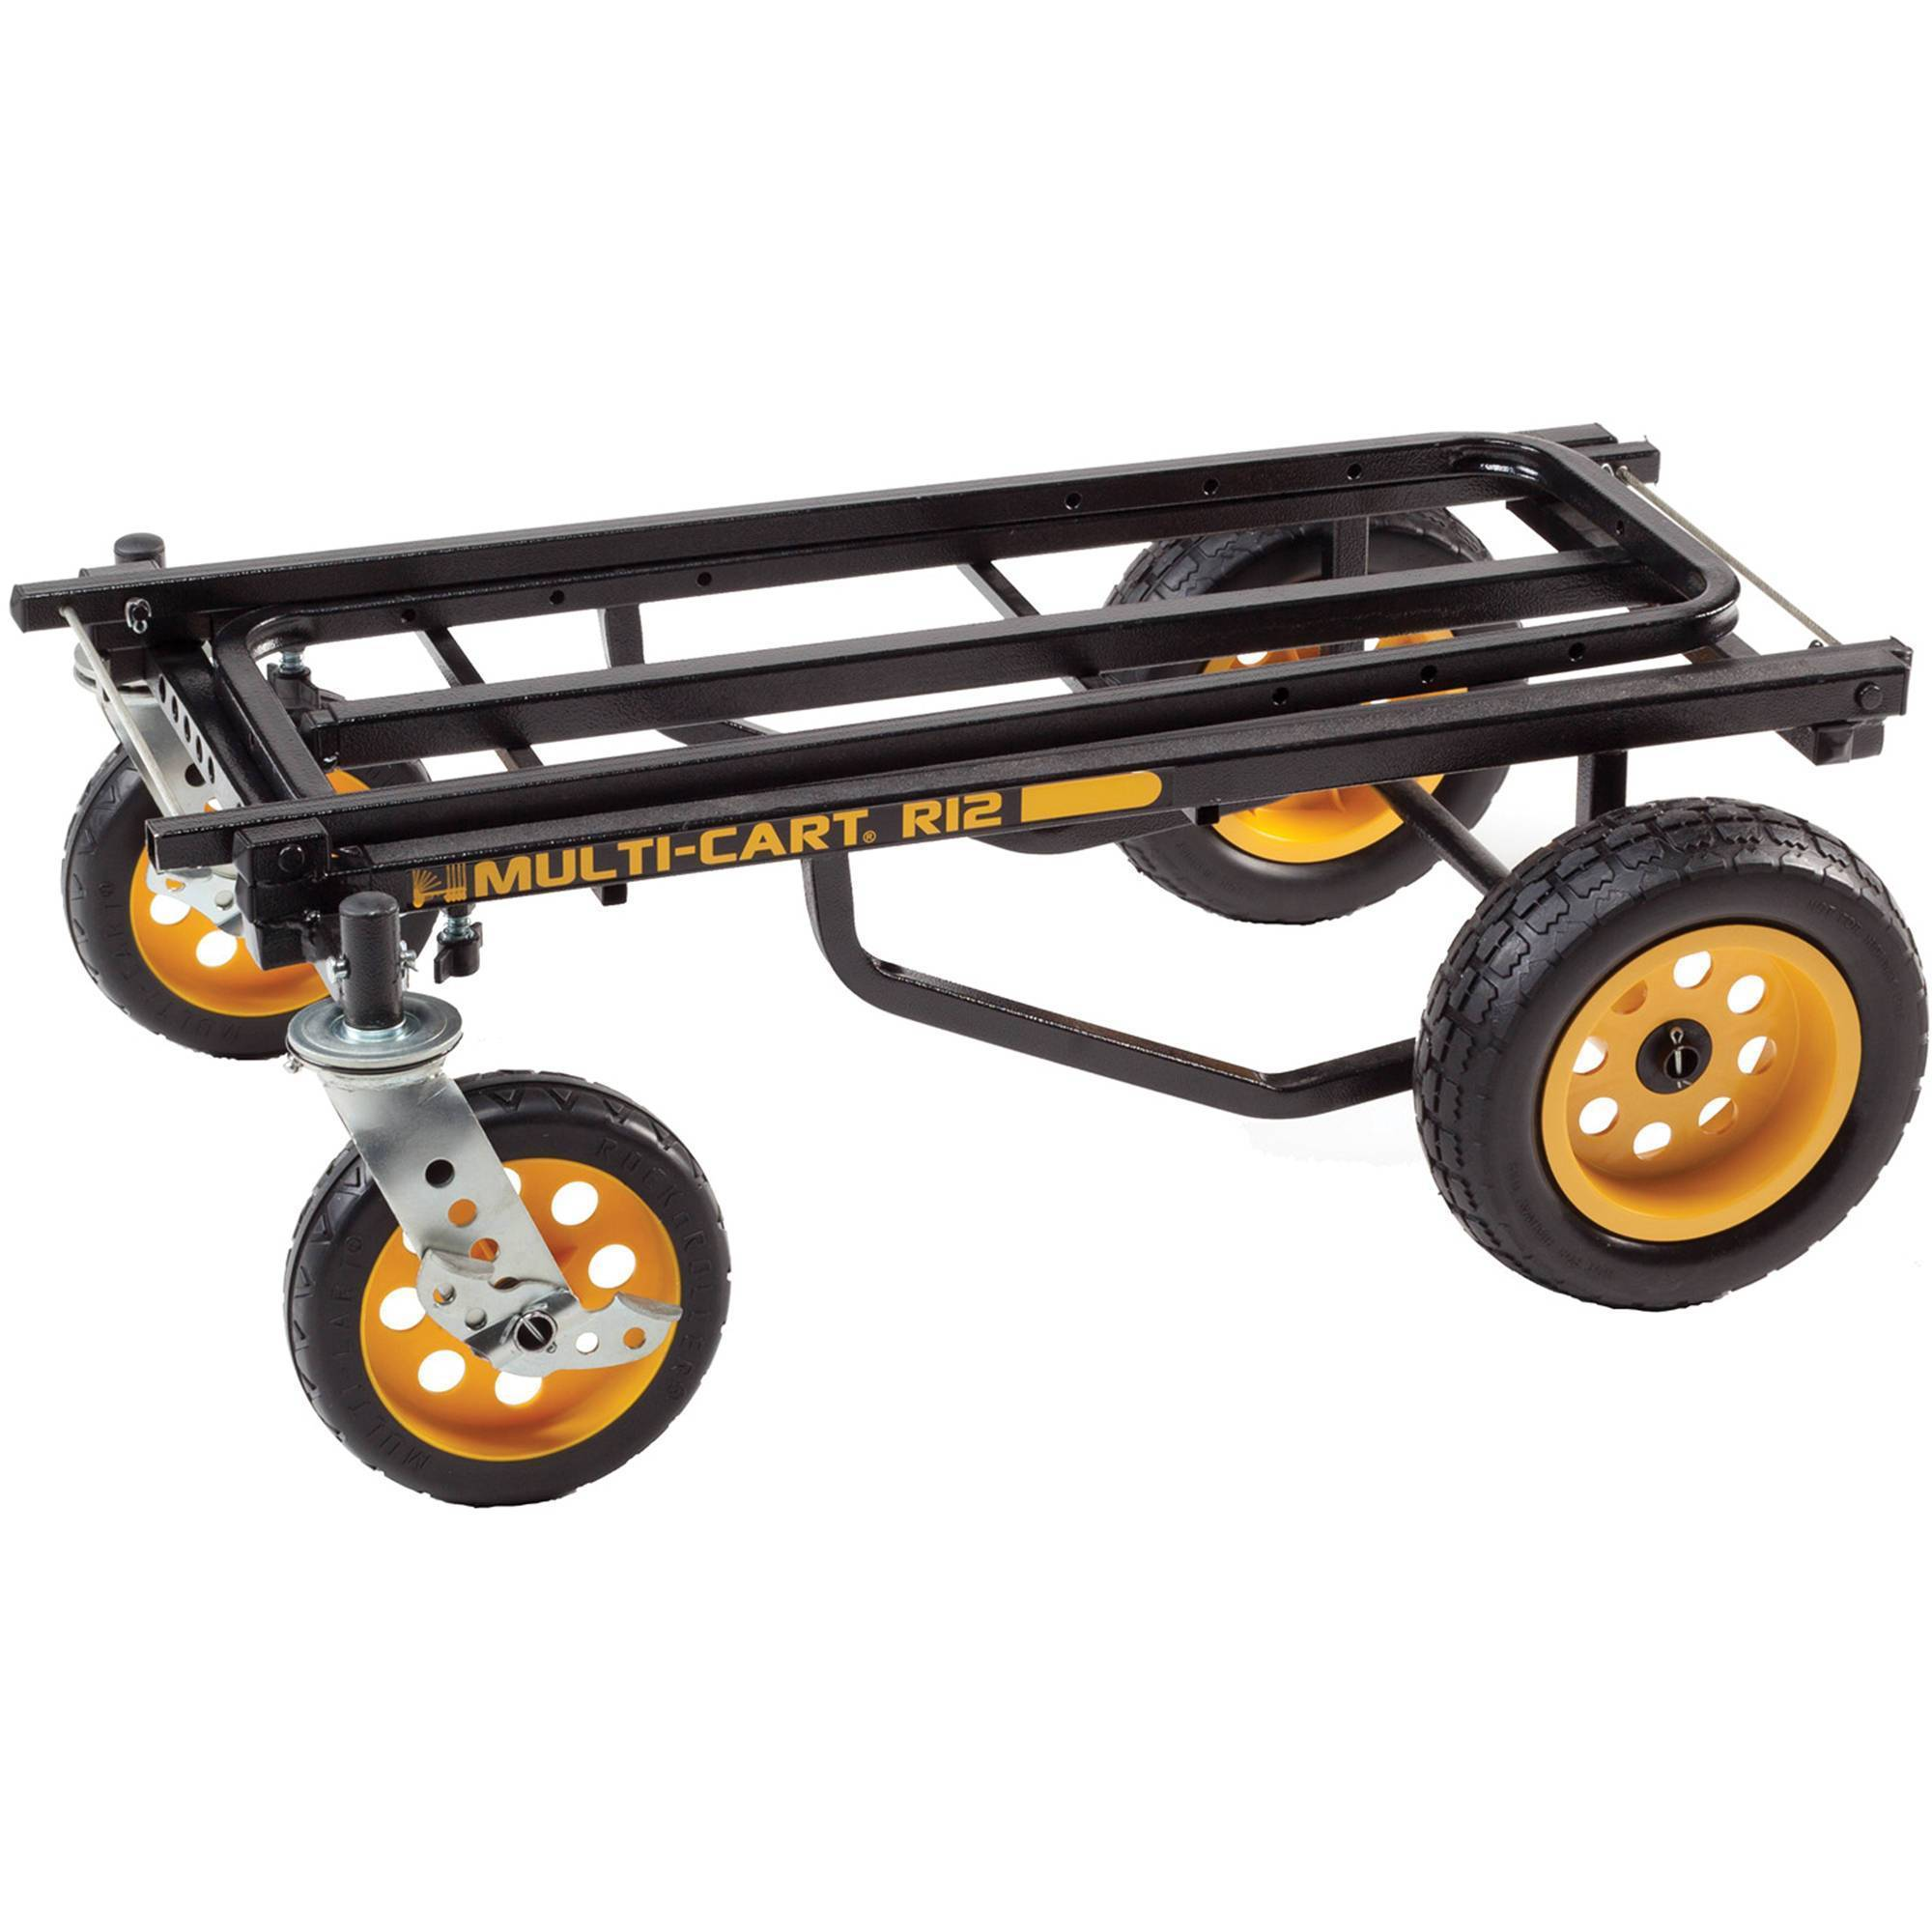 RocknRoller MultiCart R12RT 8-in-1 Equipment Cart